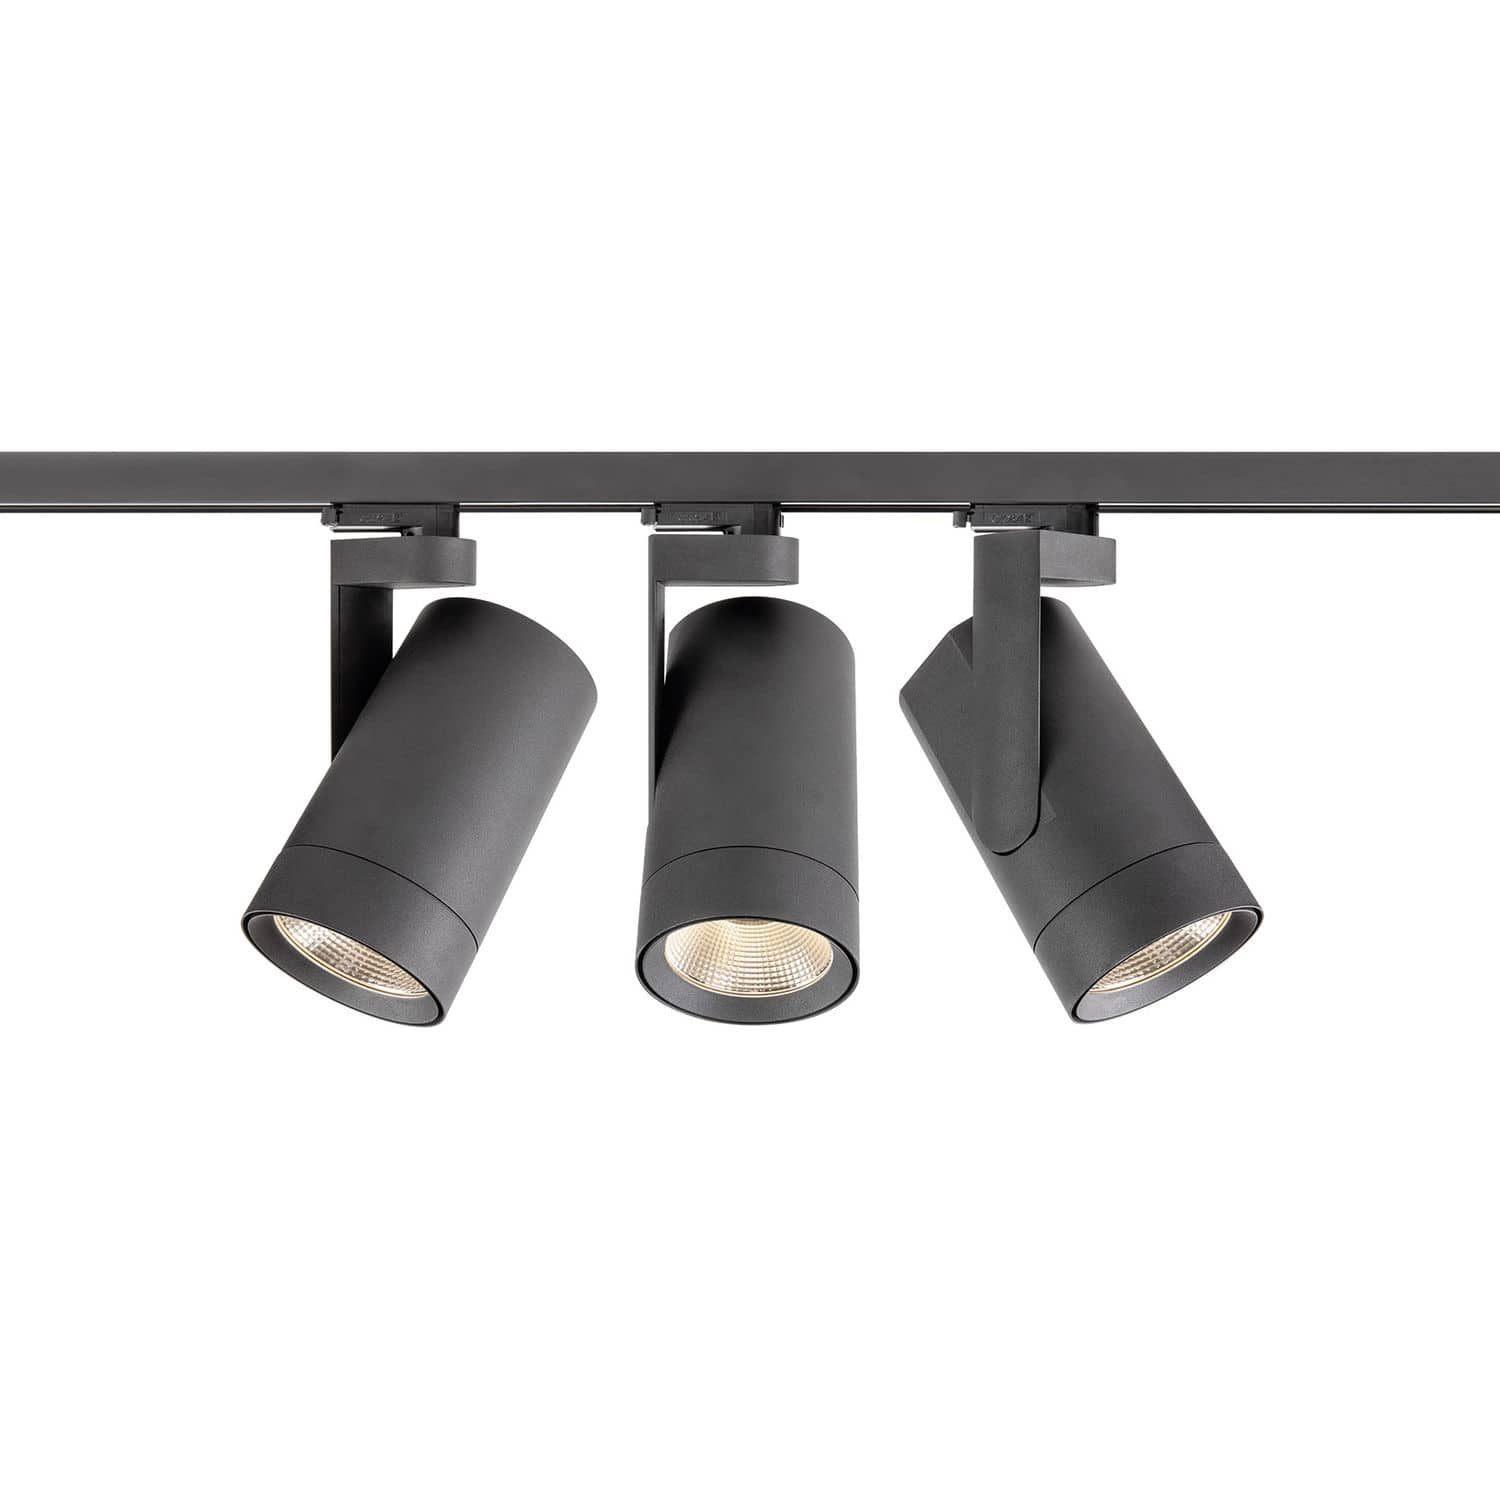 Led track light round metal commercial kanon modular led track light round metal commercial aloadofball Image collections